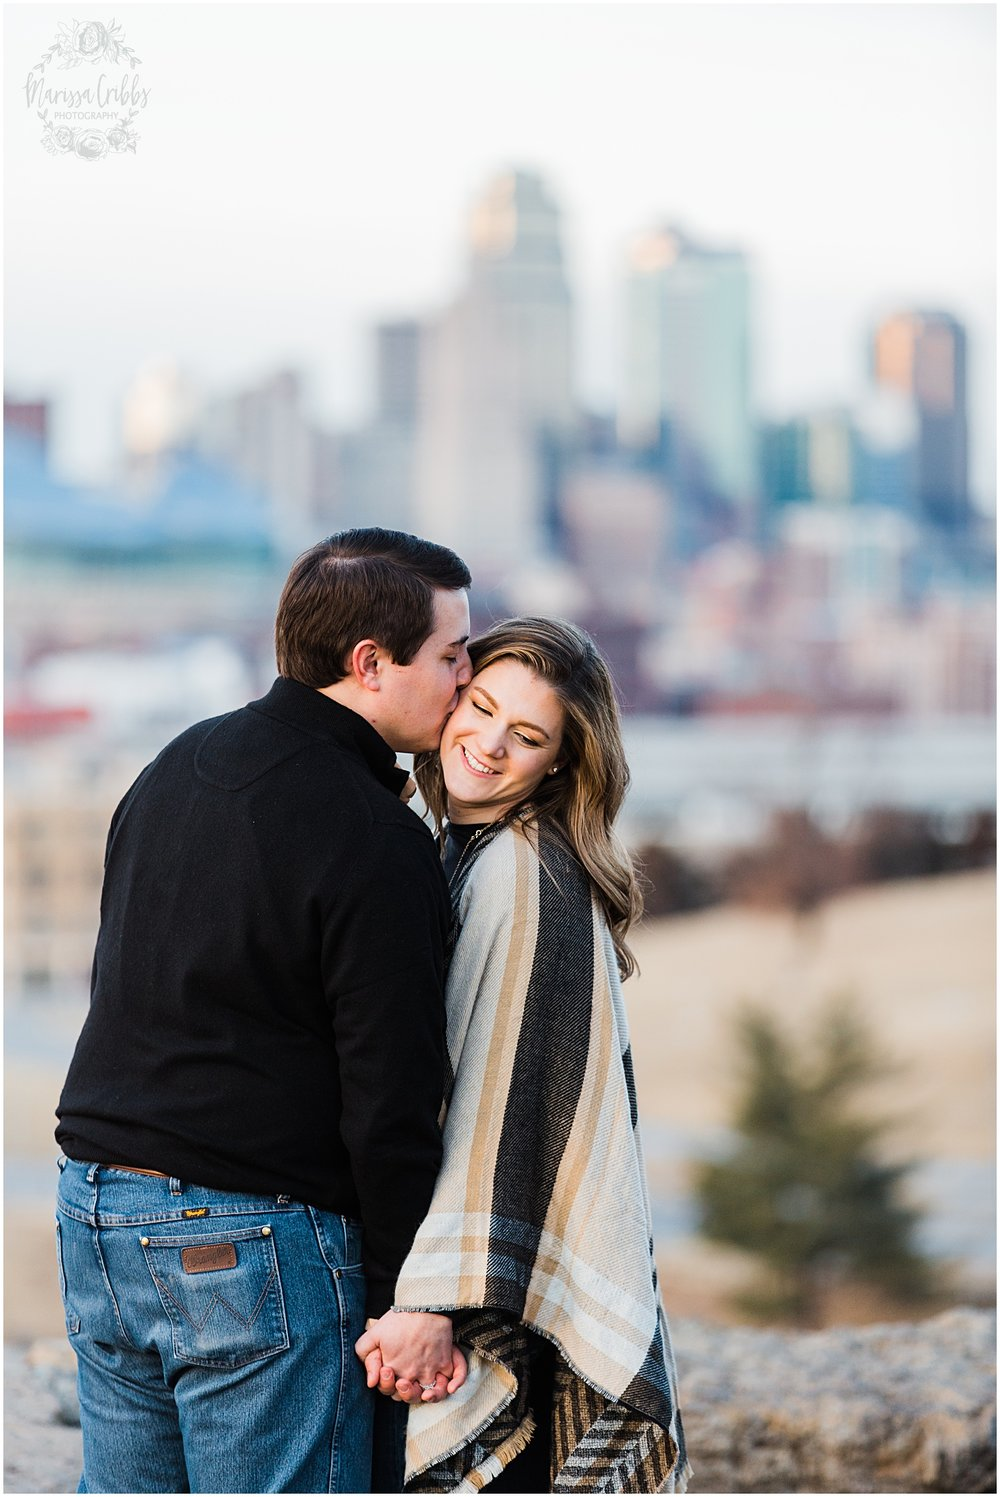 CAROLINE & JOE ENGAGEMENT FINAL | MARISSA CRIBBS PHOTOGRAPHY_4205.jpg